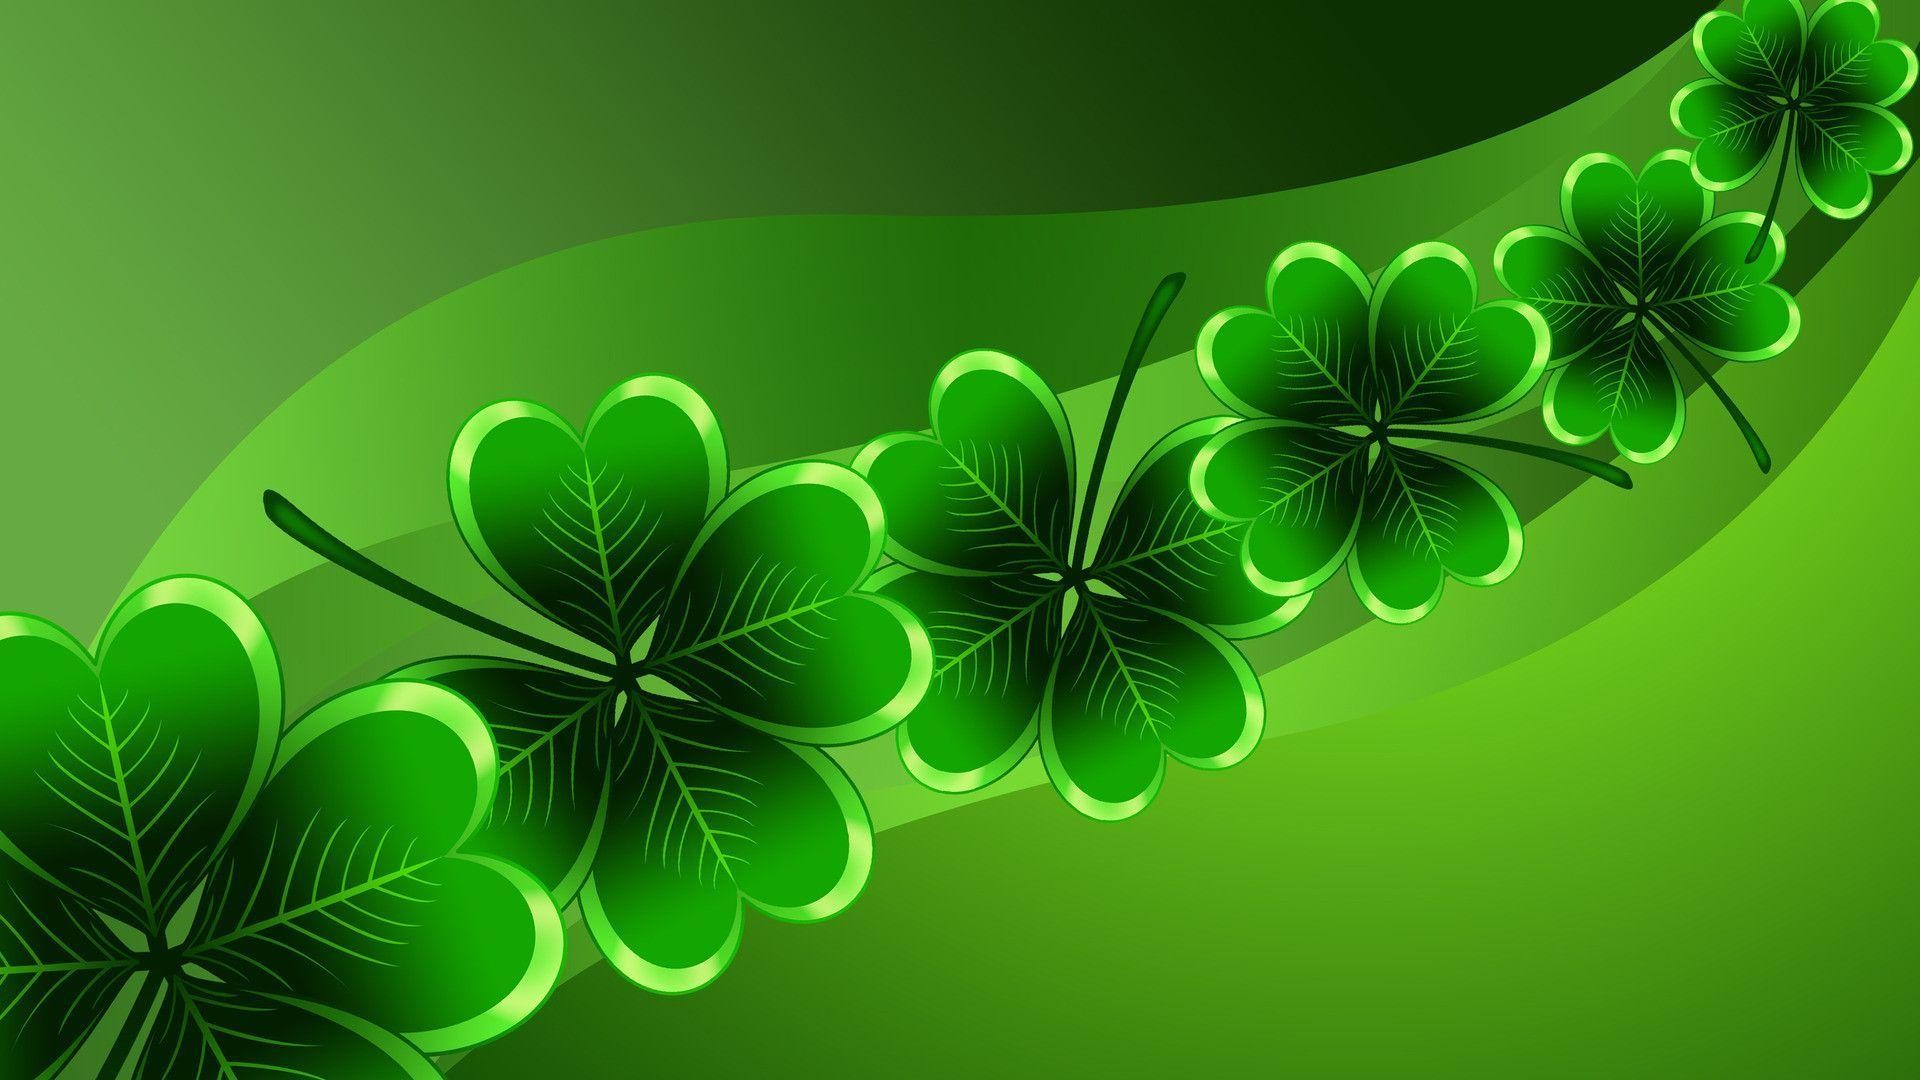 1920x1080 St Patricks Day Wallpapers